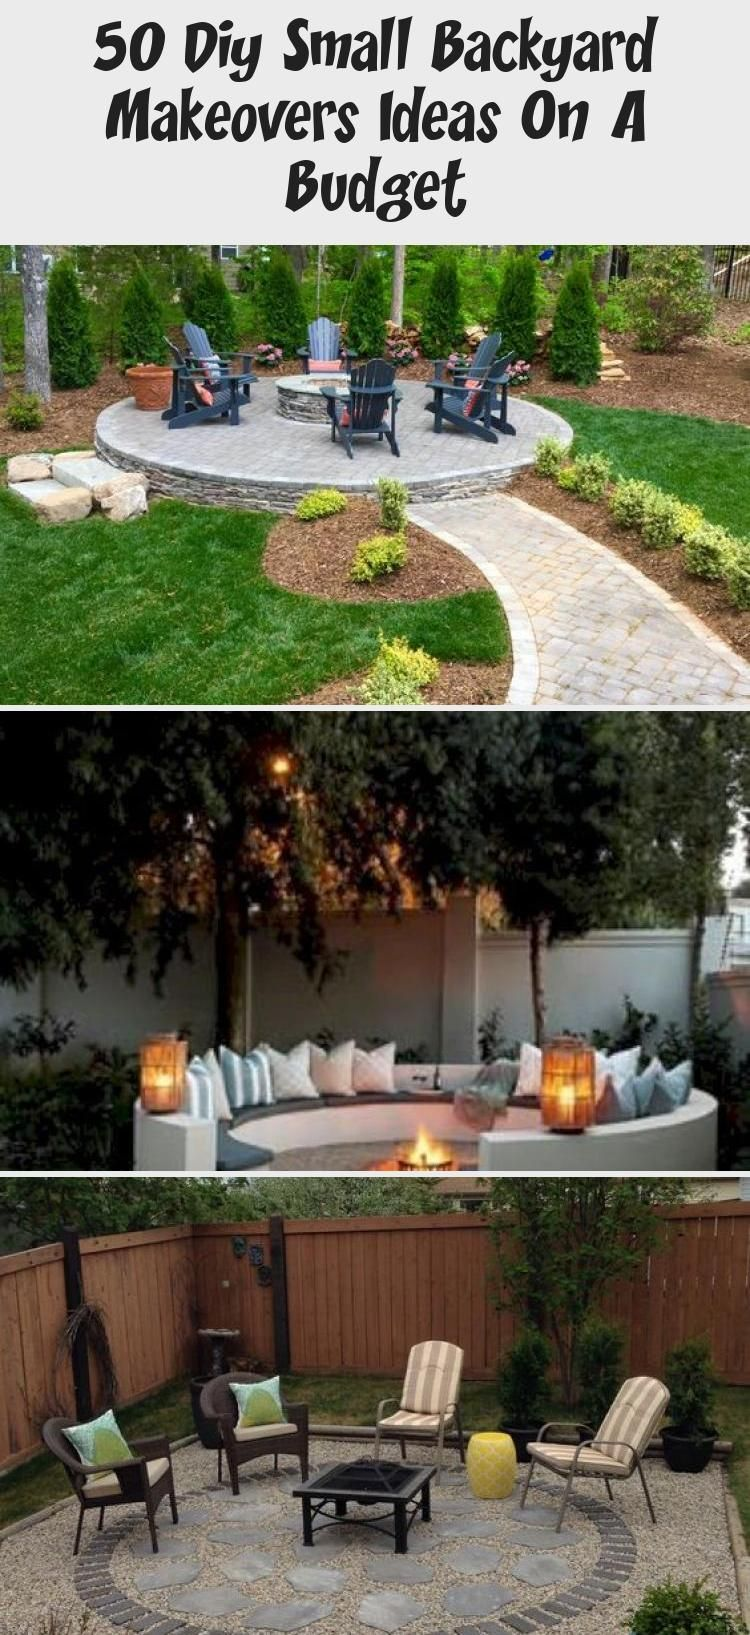 50 Diy Small Backyard Makeovers Ideas On A Budget Garden Backyard Budget Diy Garden Small Backyard Backyard Makeover Backyard